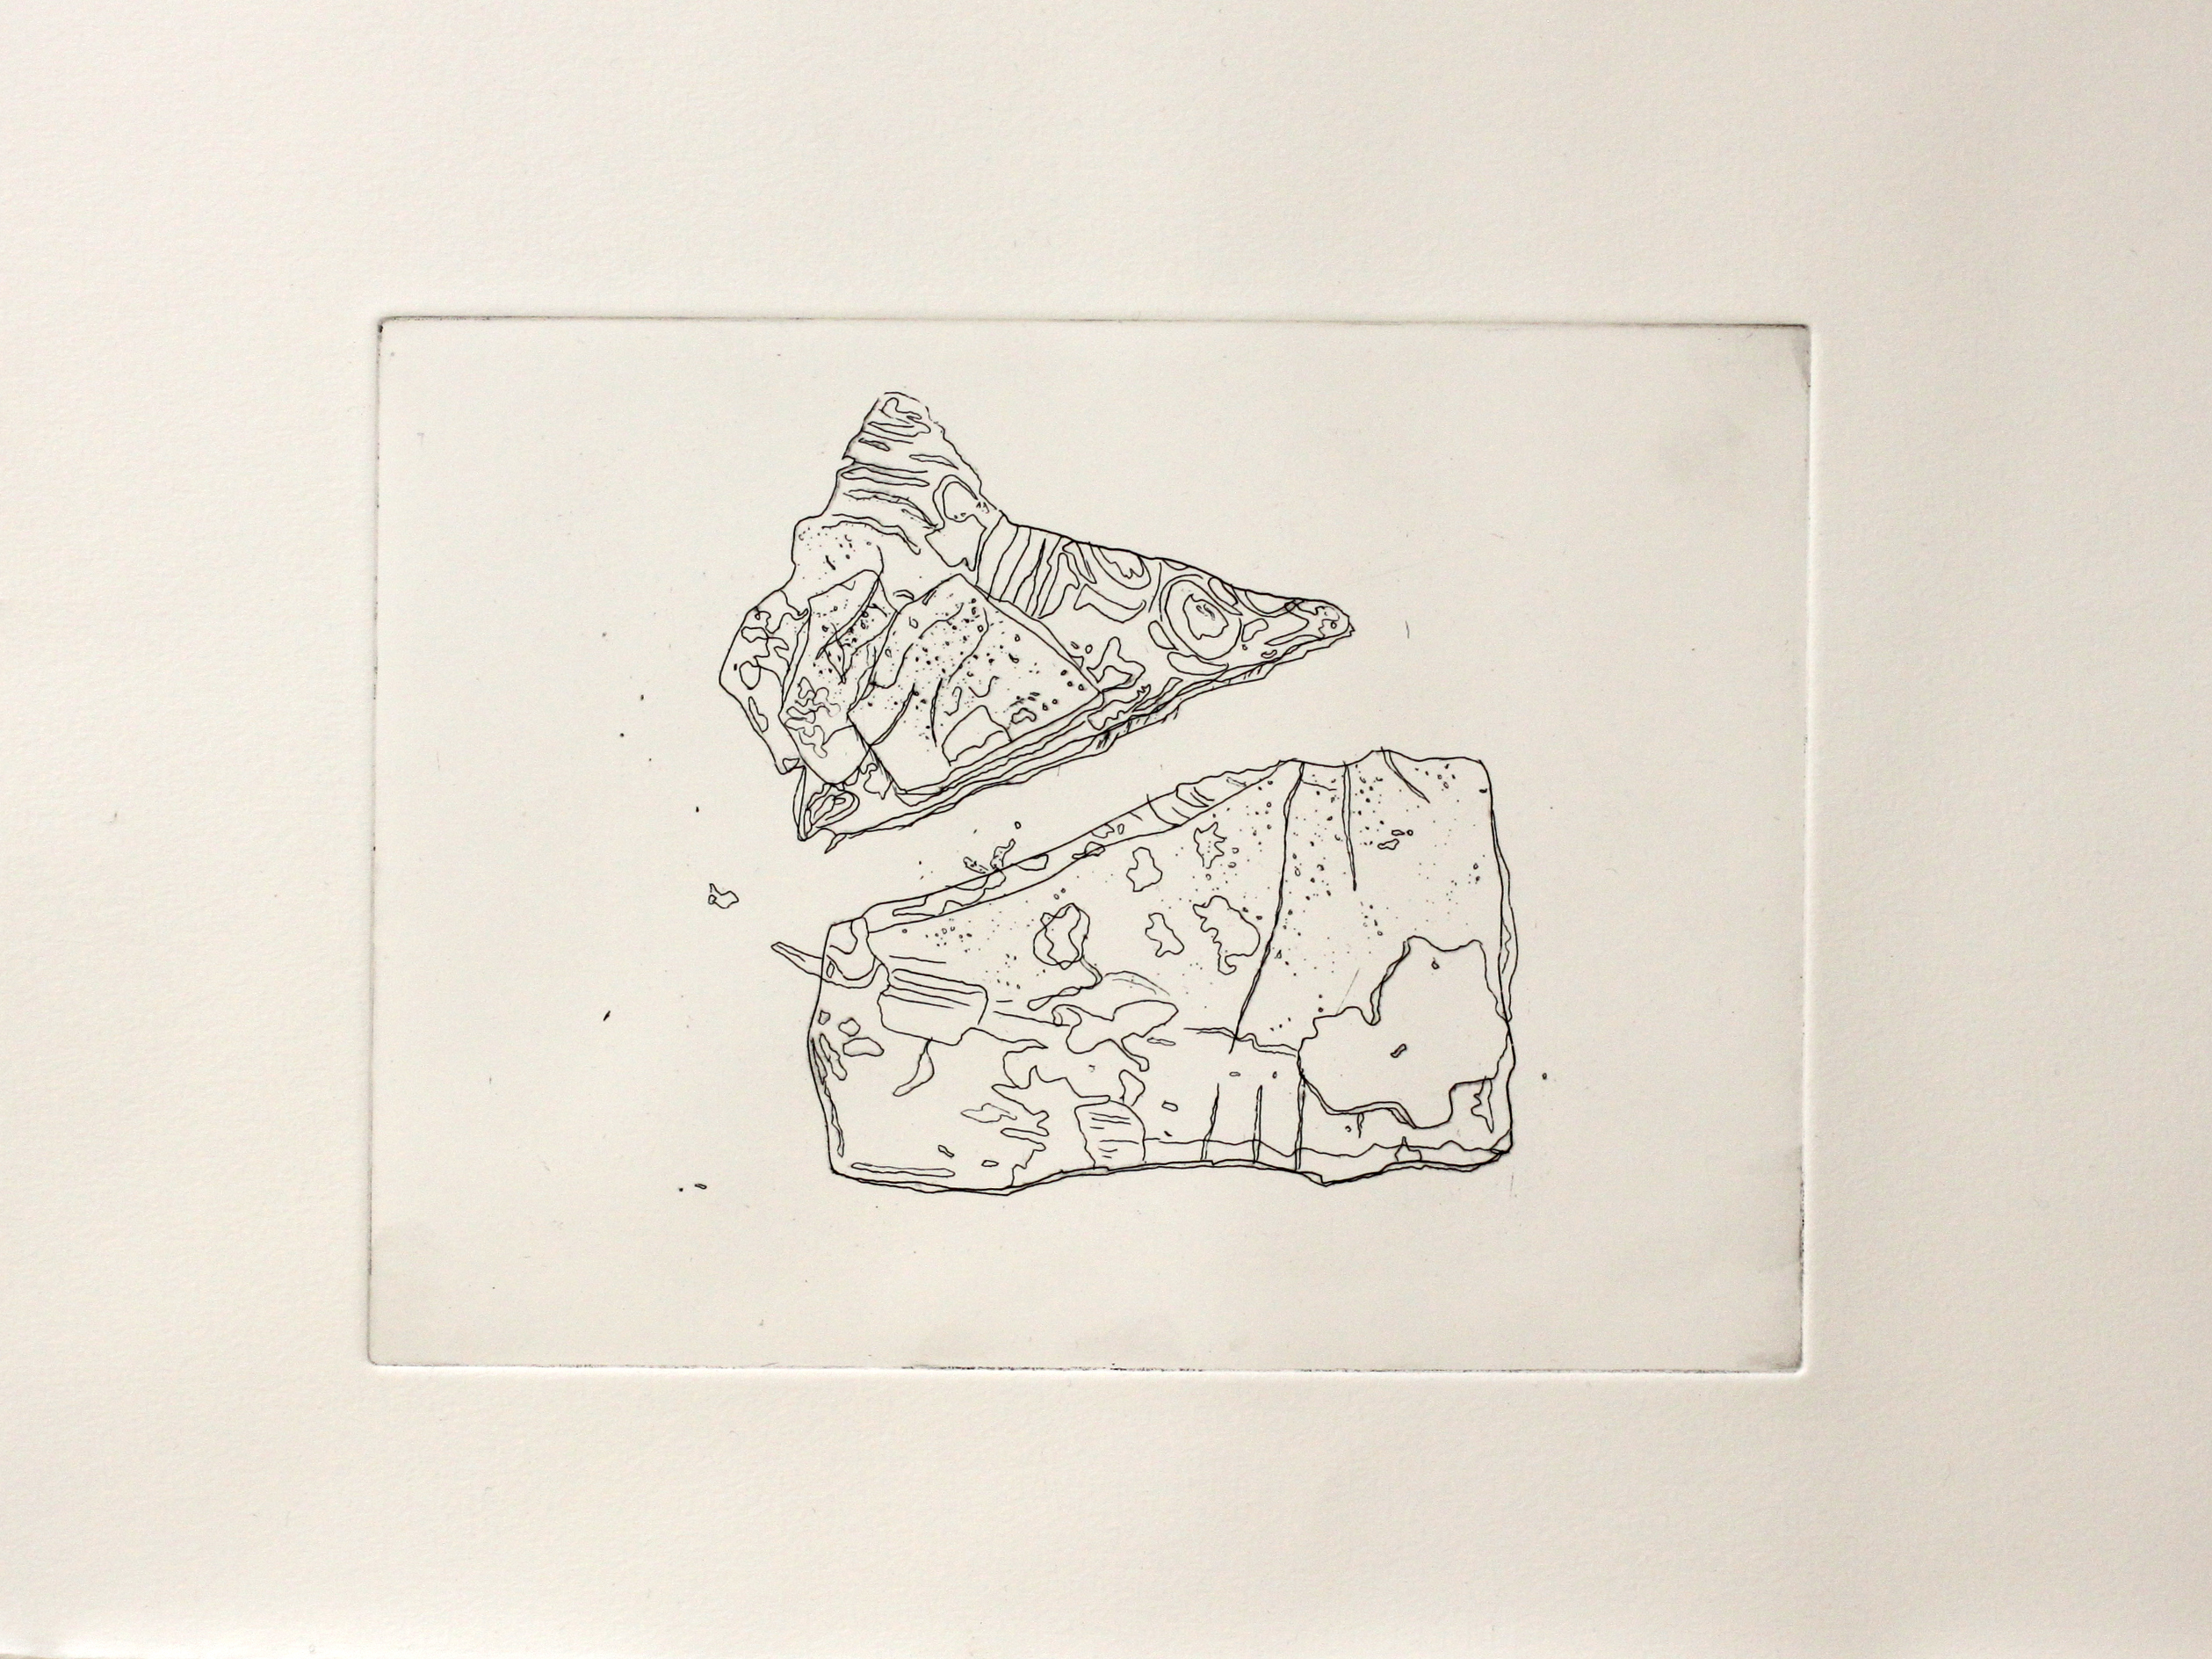 Light Pair | Hard groud etching by Abi Spendlove